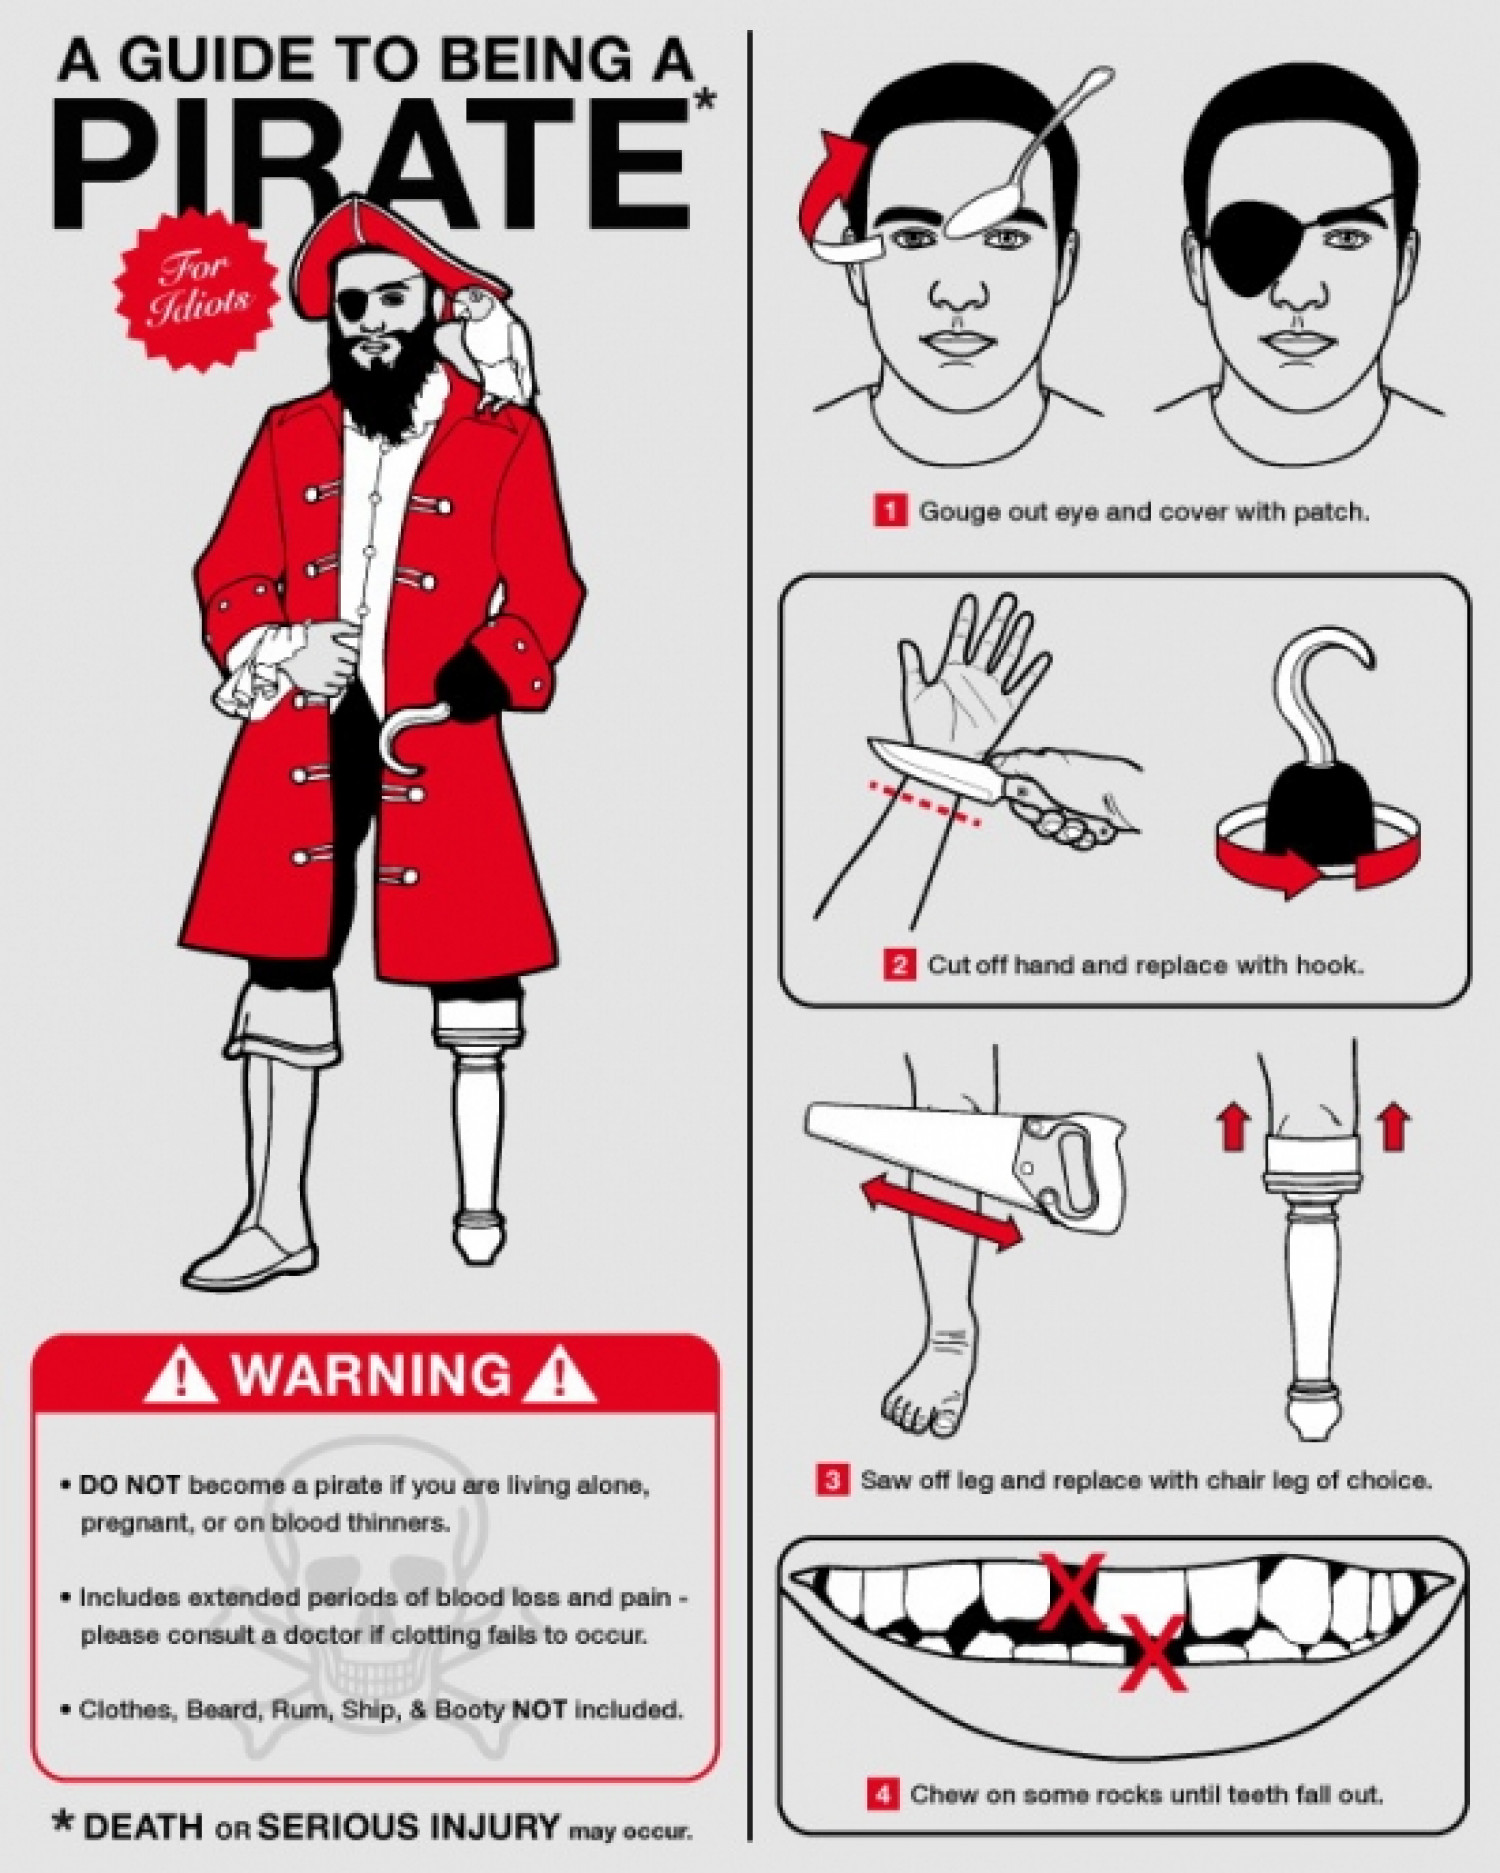 The Guide to Being a Pirate Infographic